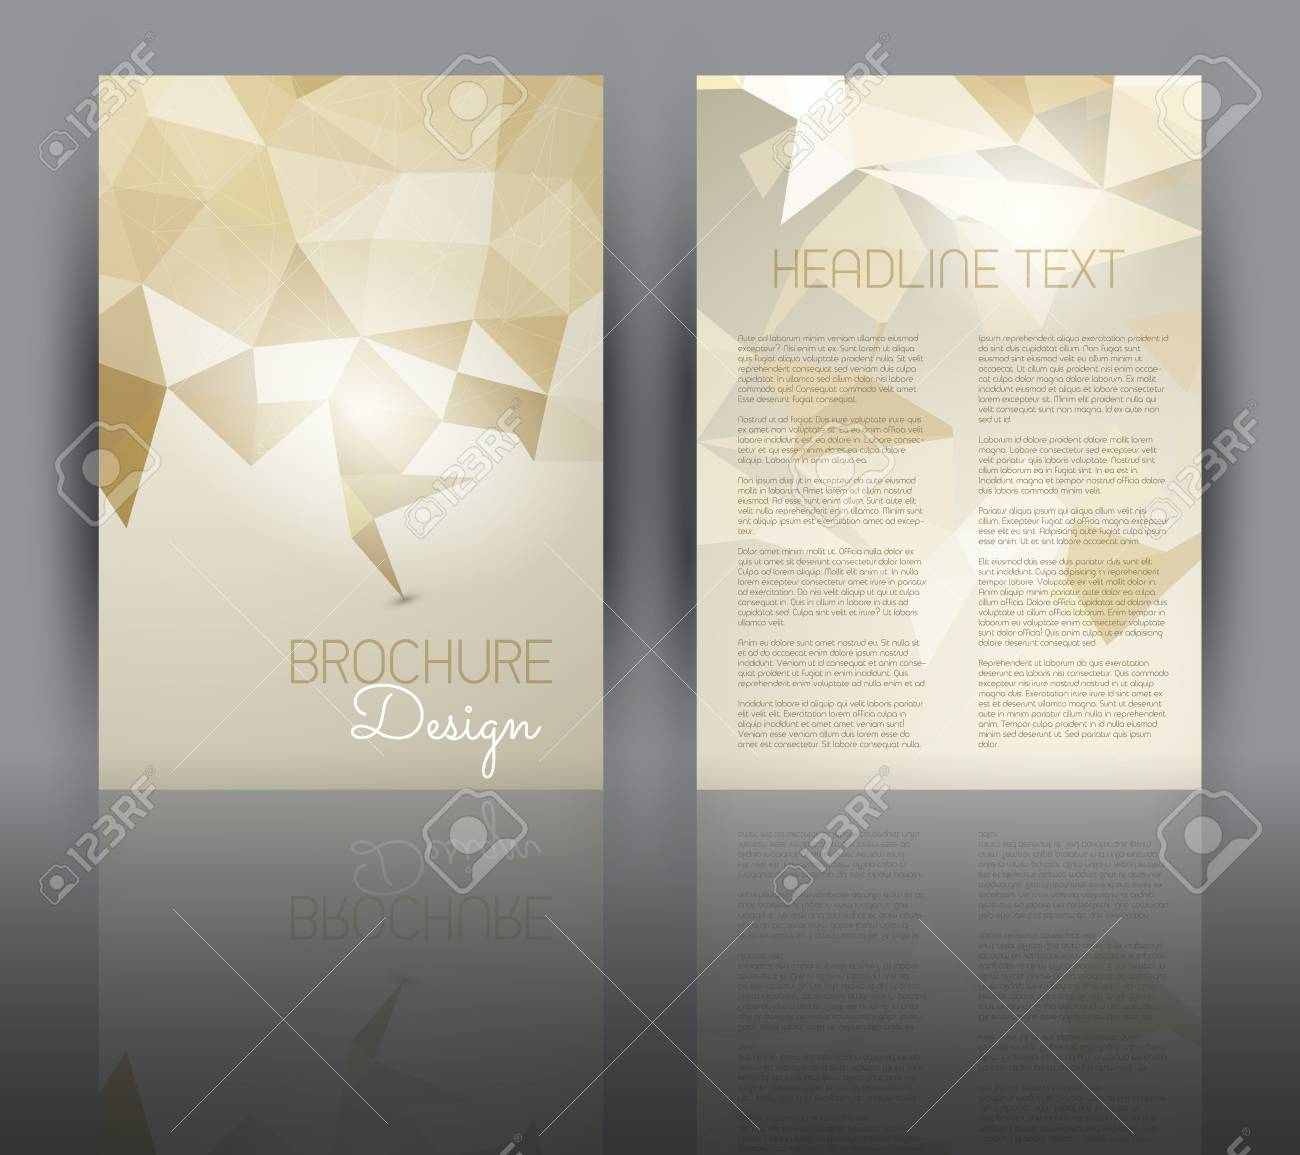 Double Sided Flyer Template With A Low Poly Design Stock Photo ...